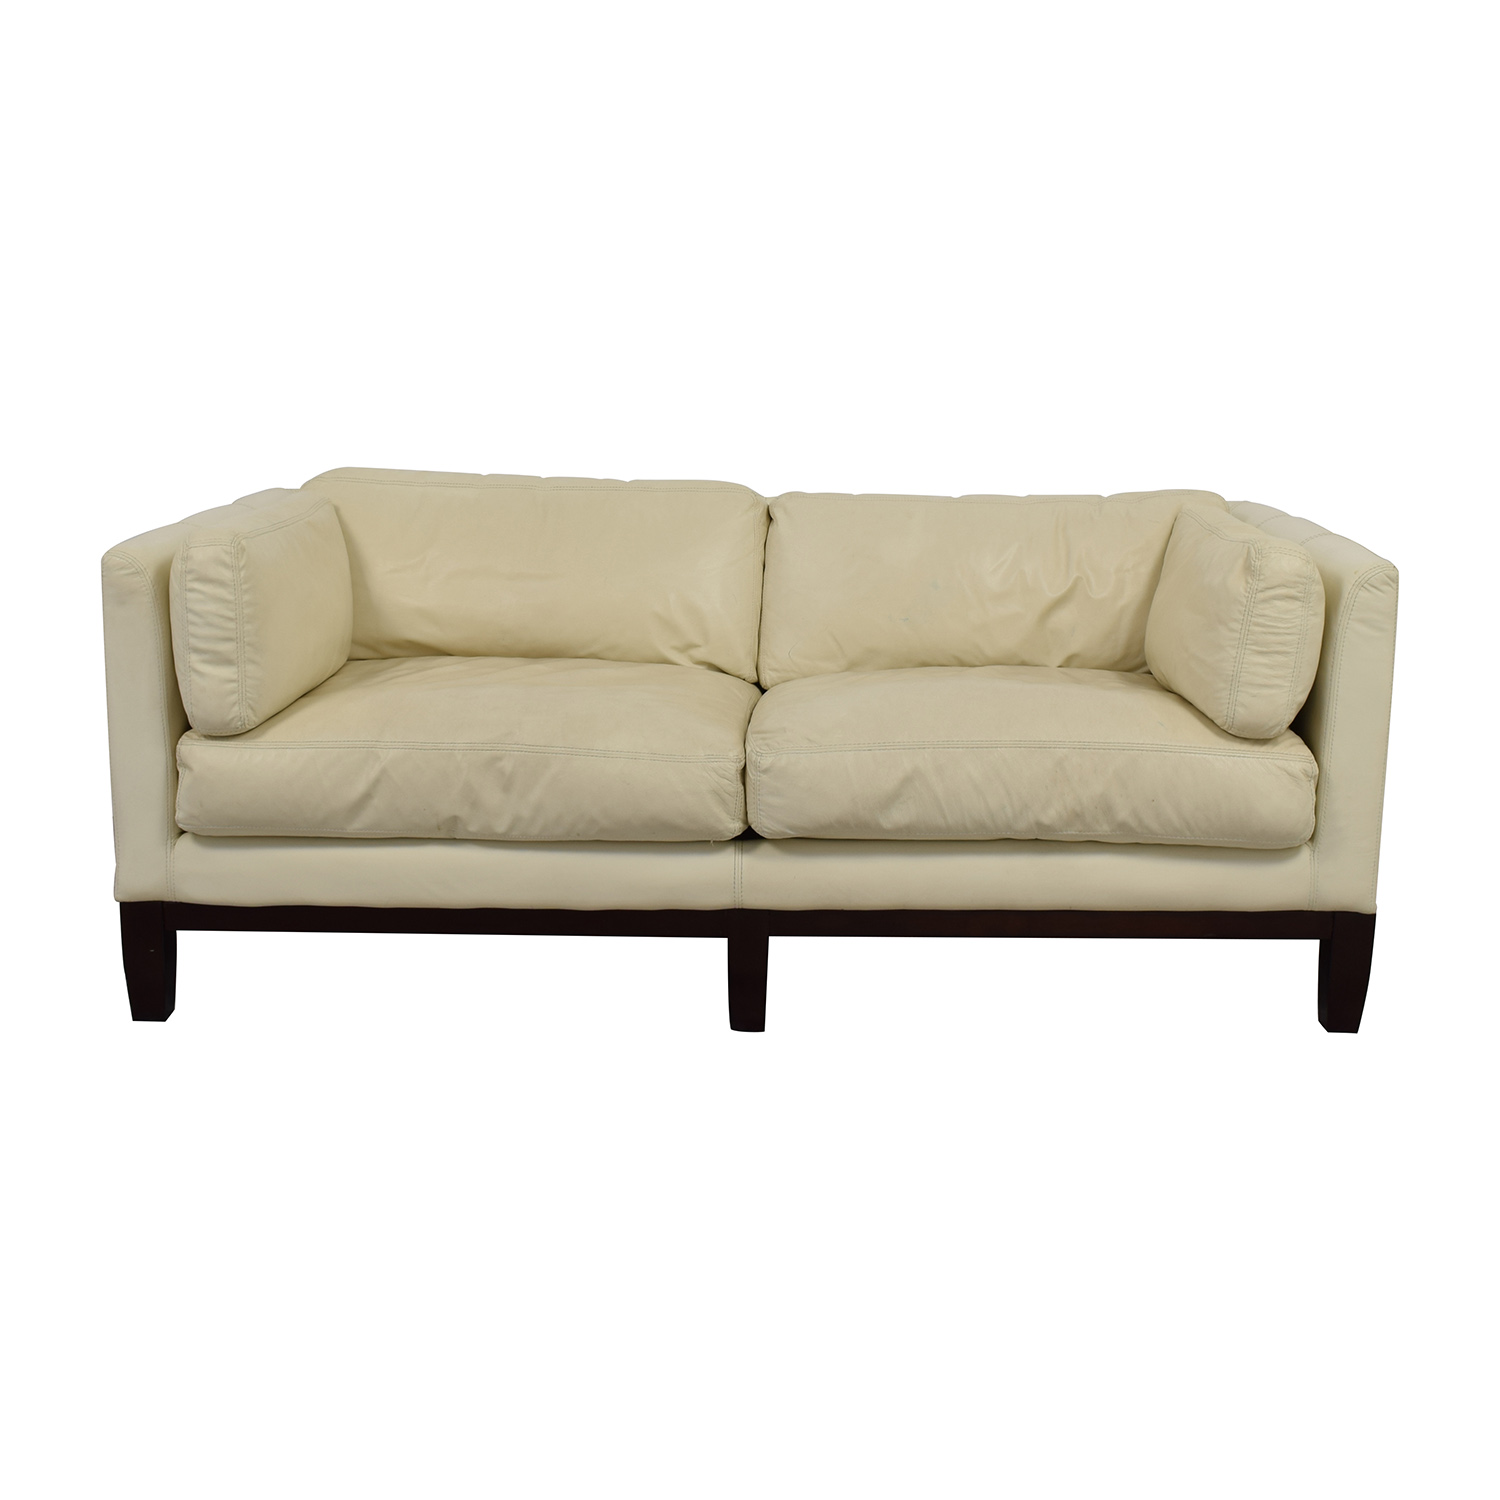 72% OFF - DeCoro Decoro Off-White Leather Sofa / Sofas